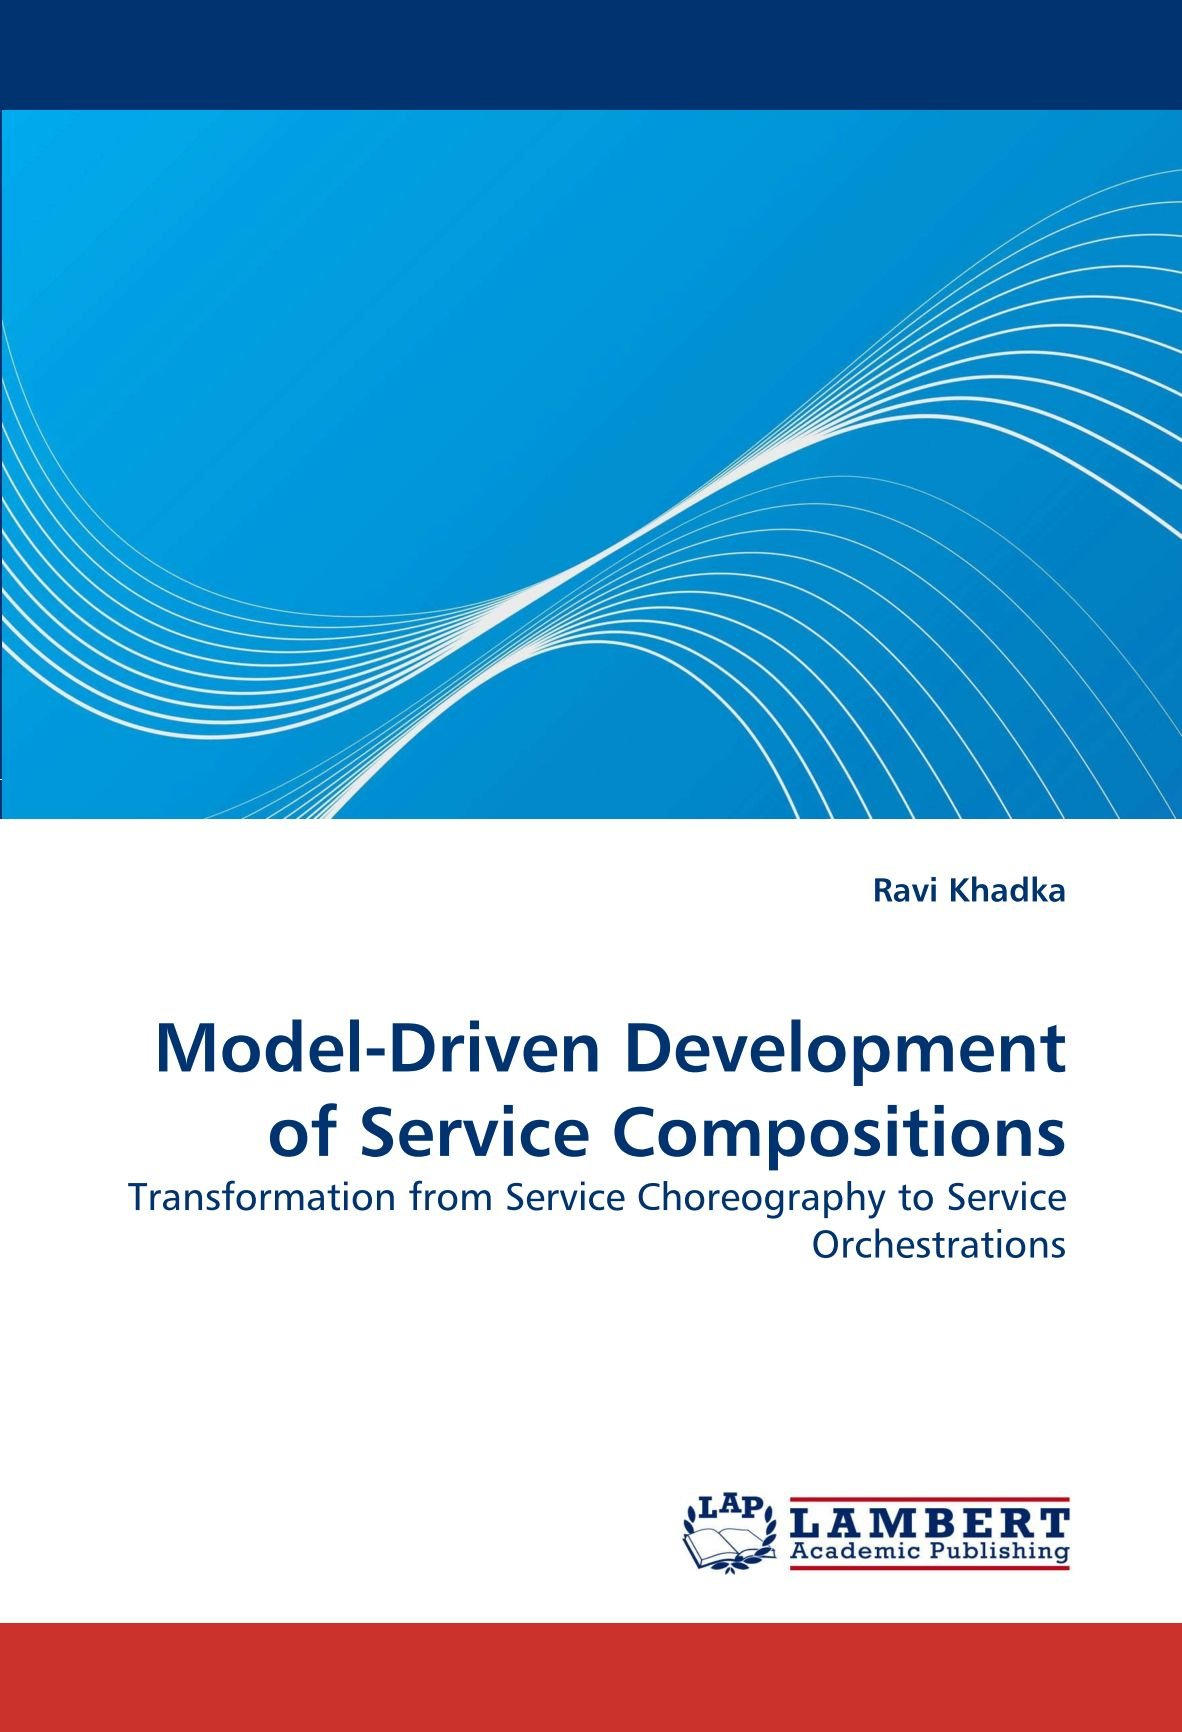 Model-Driven Development of Service Compositions: Transformation from Service Choreography to Service Orchestrations